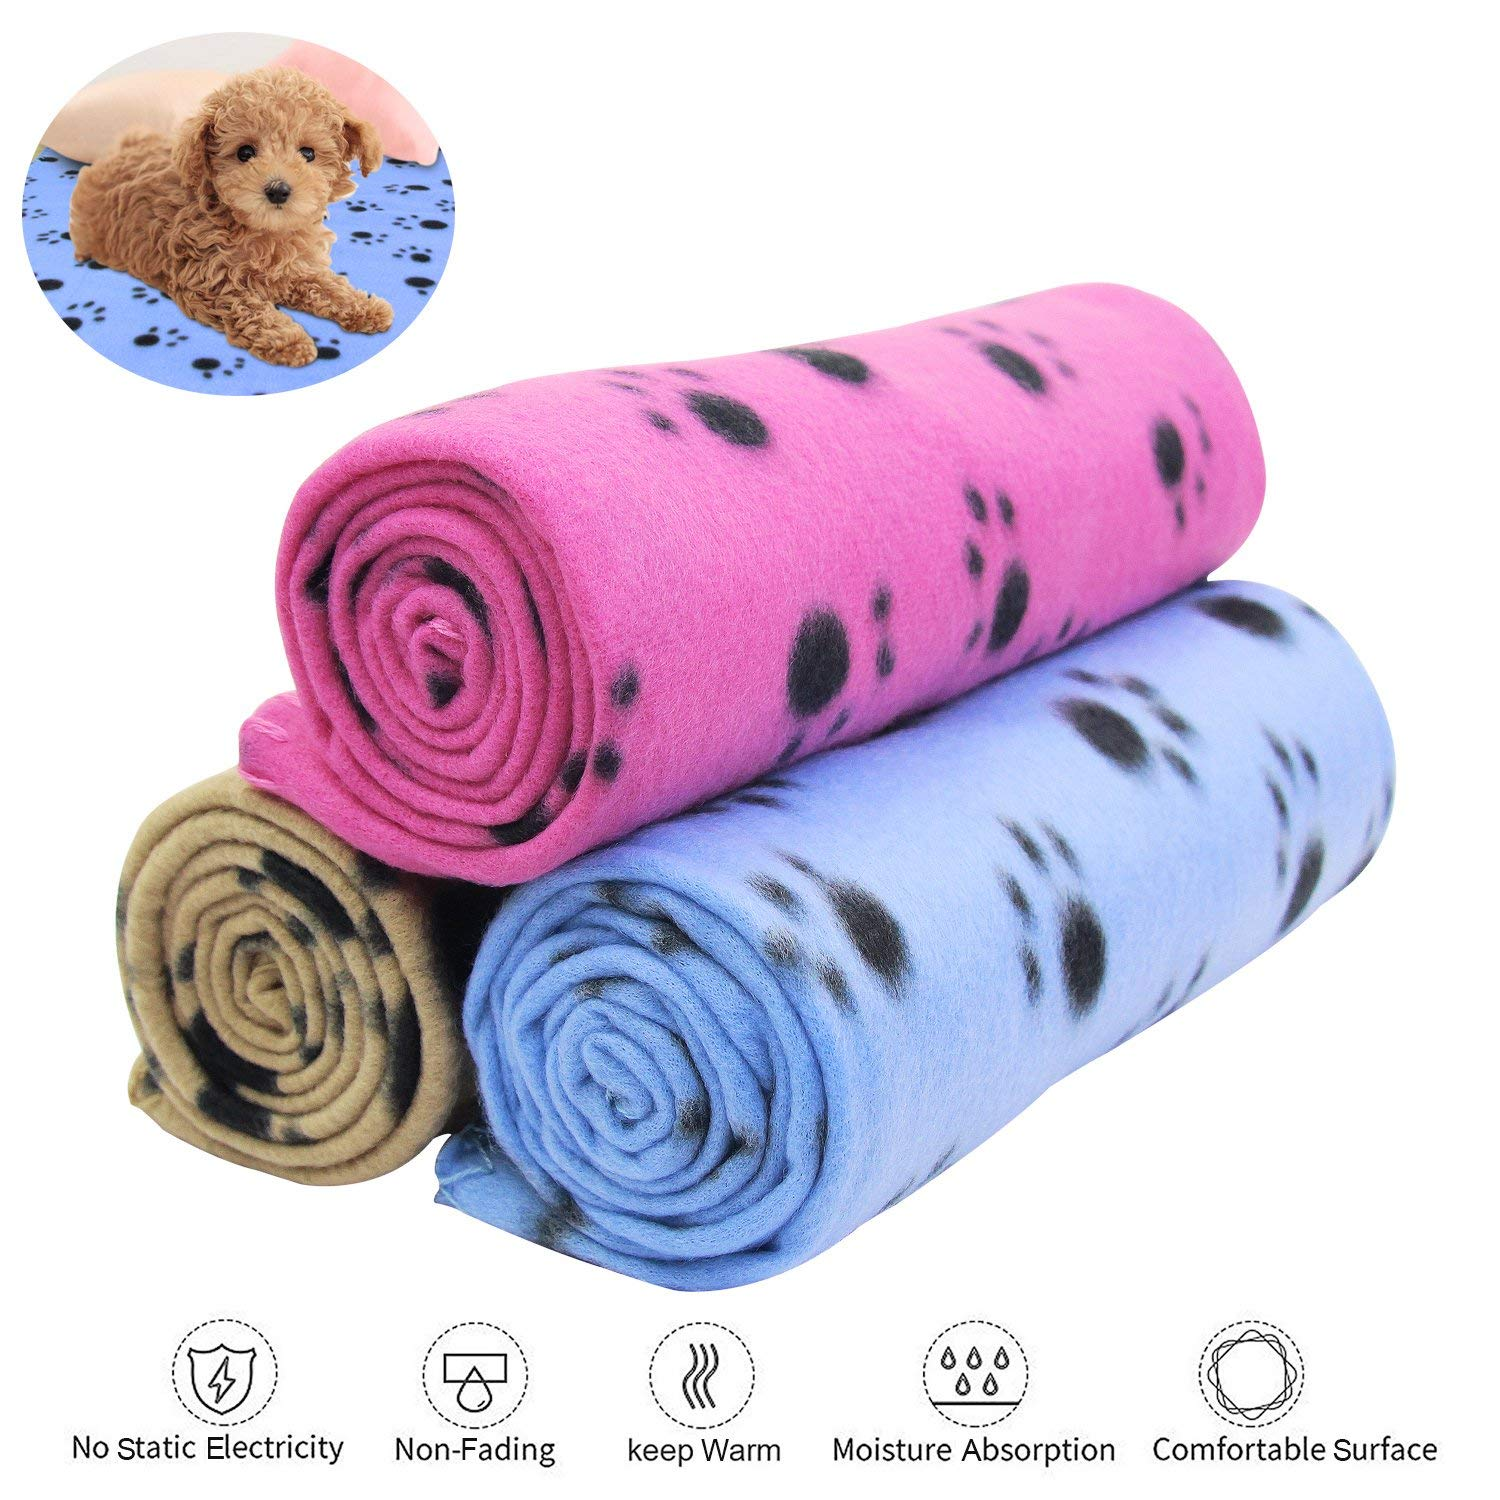 KYC 3 pack 40 x 28 '' Puppy Blanket Cushion Dog Cat Fleece Blankets Pet Sleep Mat Pad Bed Cover with Paw Print Kitten Soft Warm Blanket for Animals (Mixed A) by KYC (Image #9)